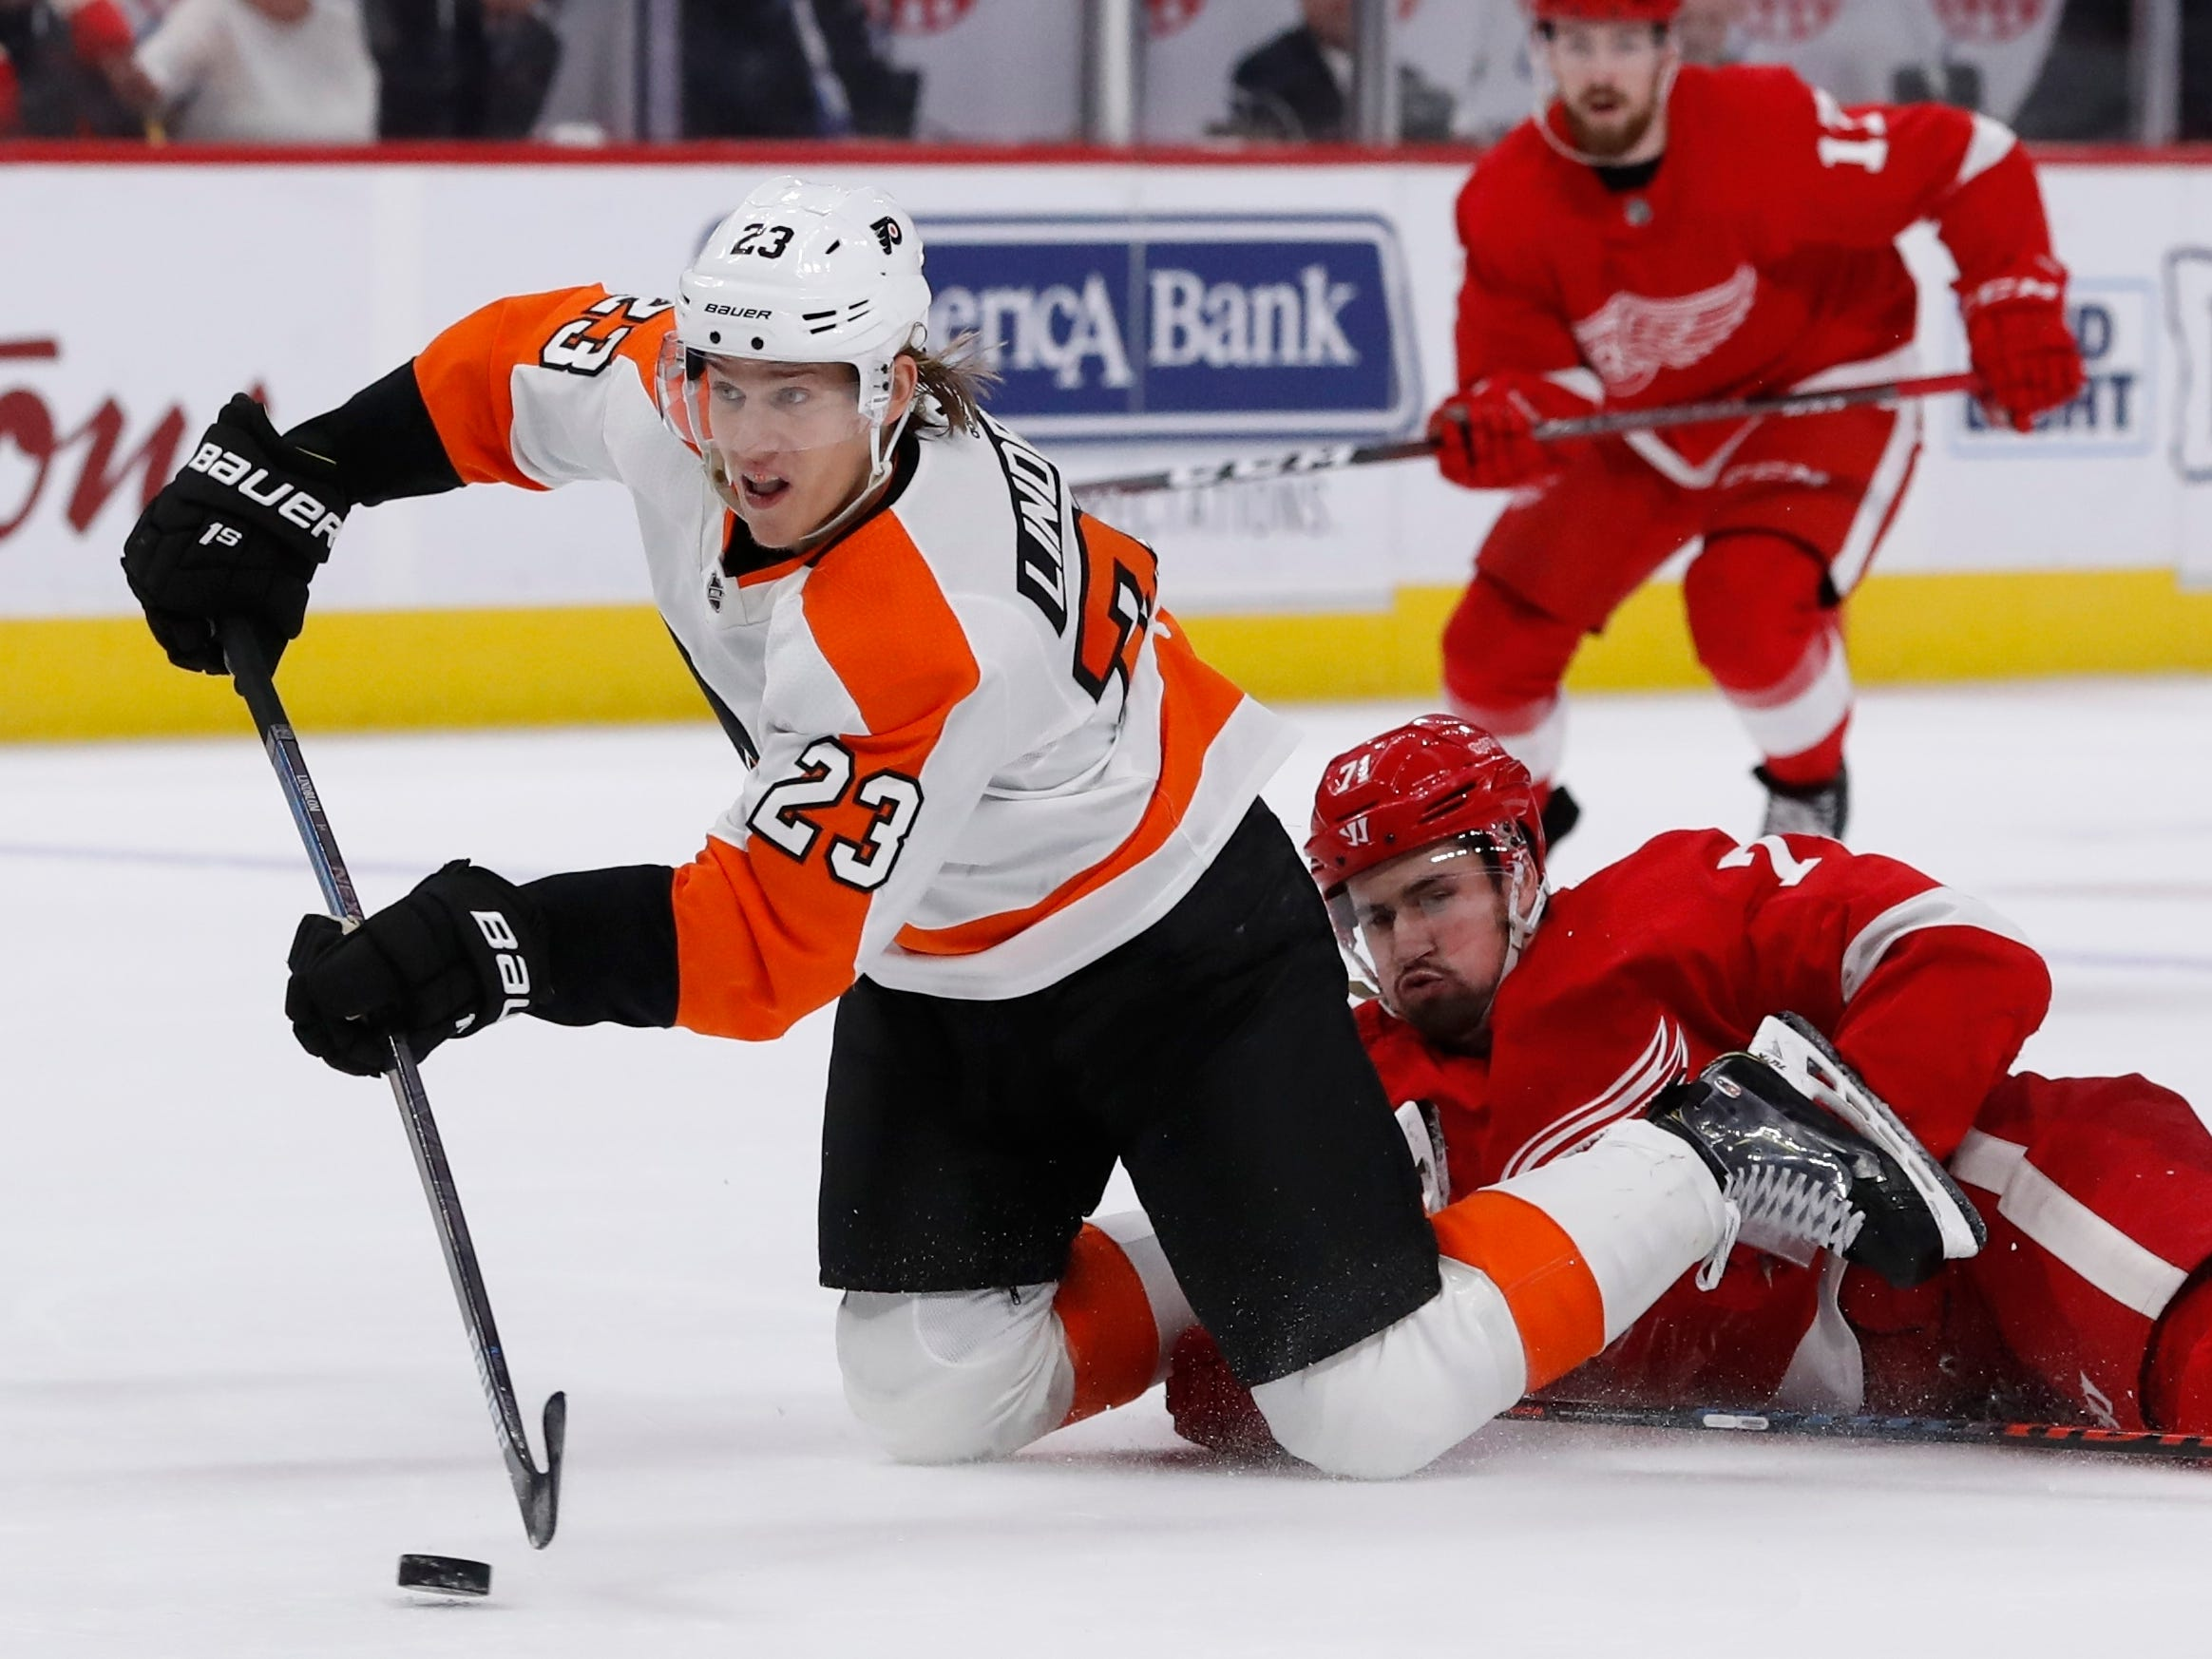 Philadelphia Flyers left wing Oskar Lindblom (23) falls in front of Red Wings center Dylan Larkin (71) and shoots at the empty net on Feb. 17, 2019, in Detroit. Lindblom scored the second of his two goals on the day.